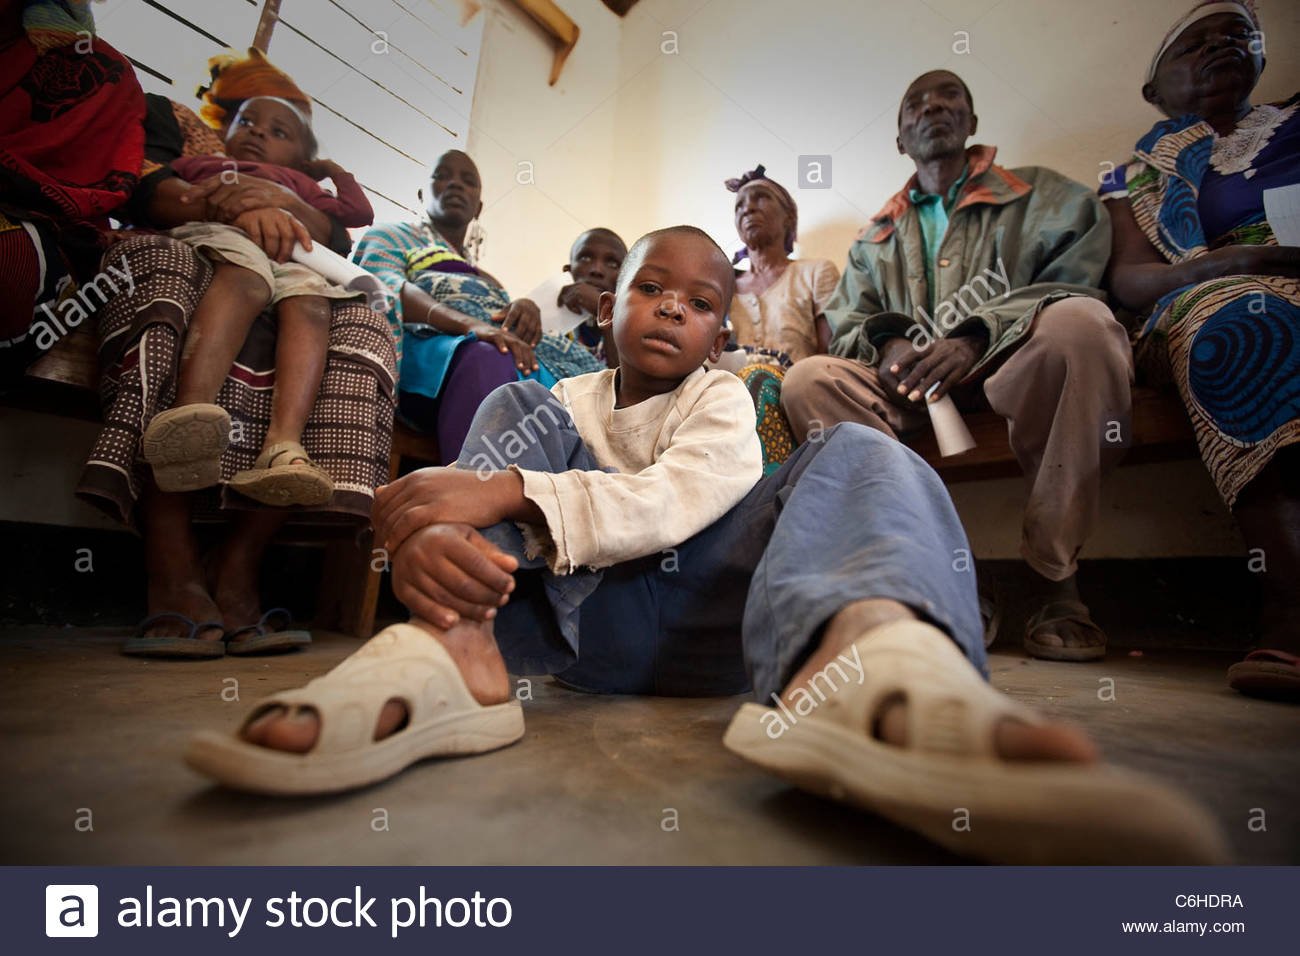 A young child waits to be seen by a doctor at a clinic - Stock Image